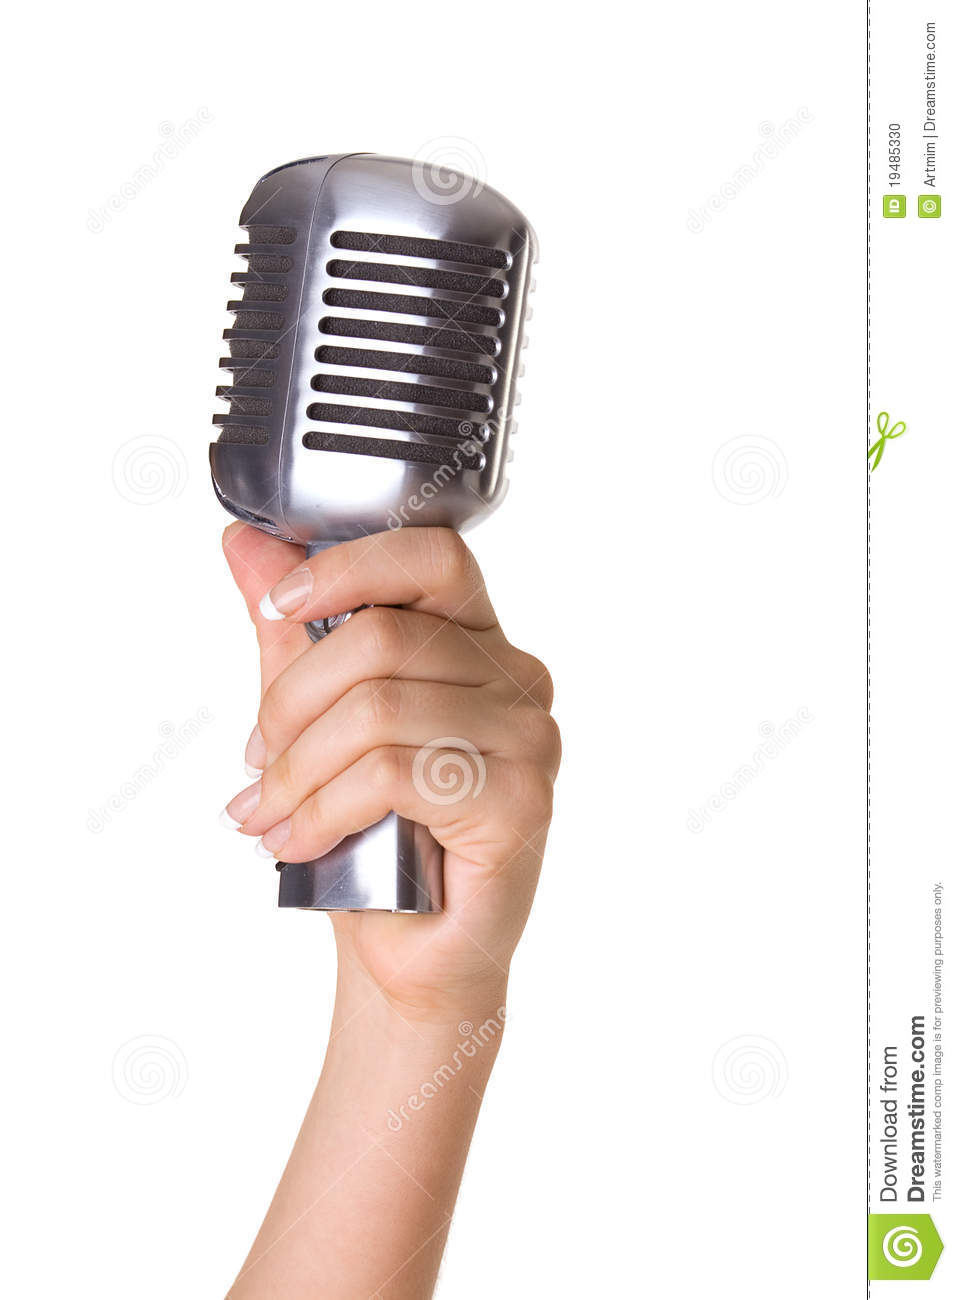 Microphone In Hand : Retro styled microphone in hand stock photo image